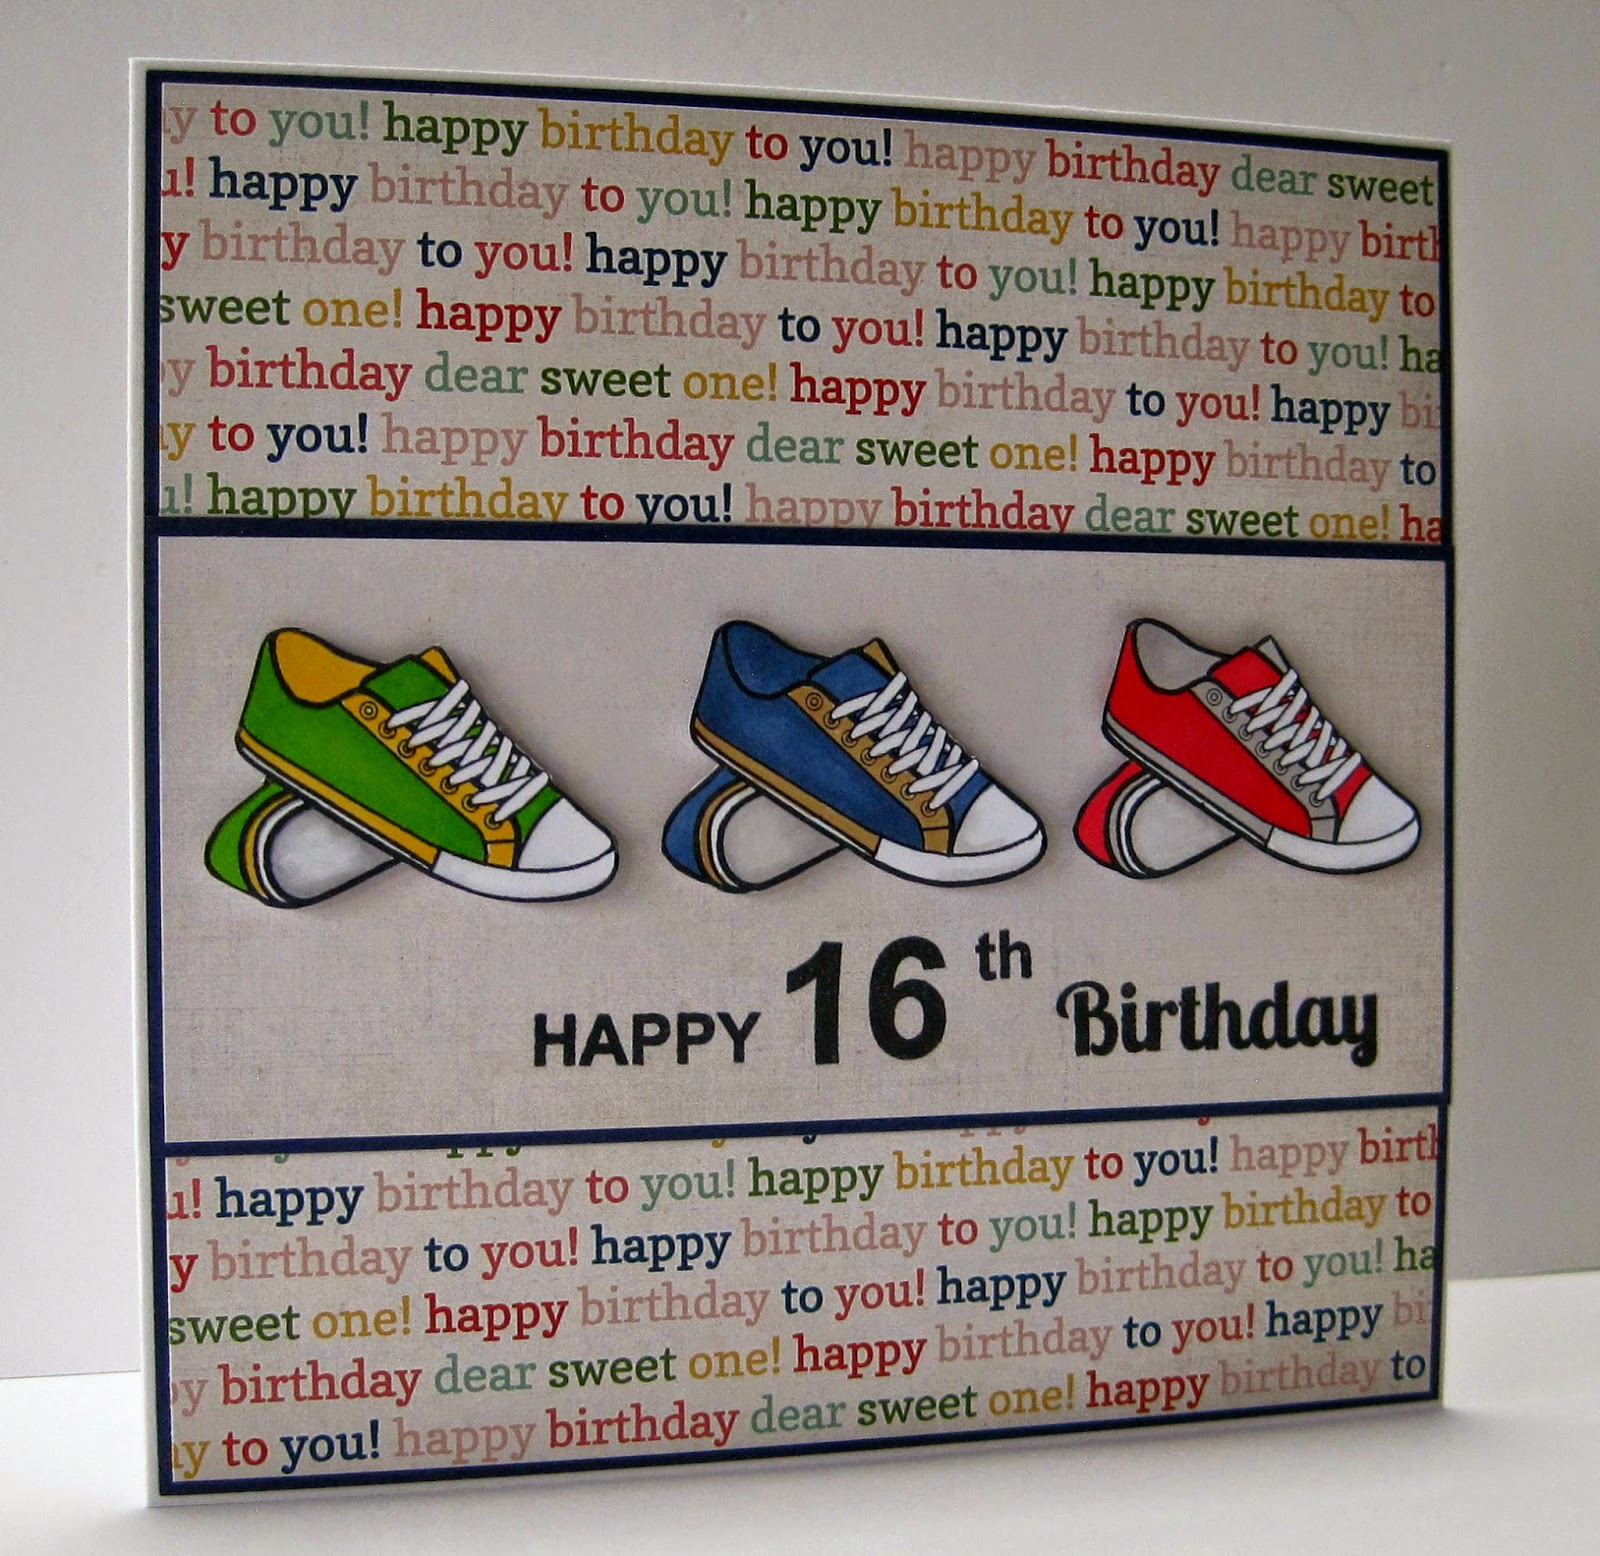 Crafting With Cotnob: Happy 16th Birthday